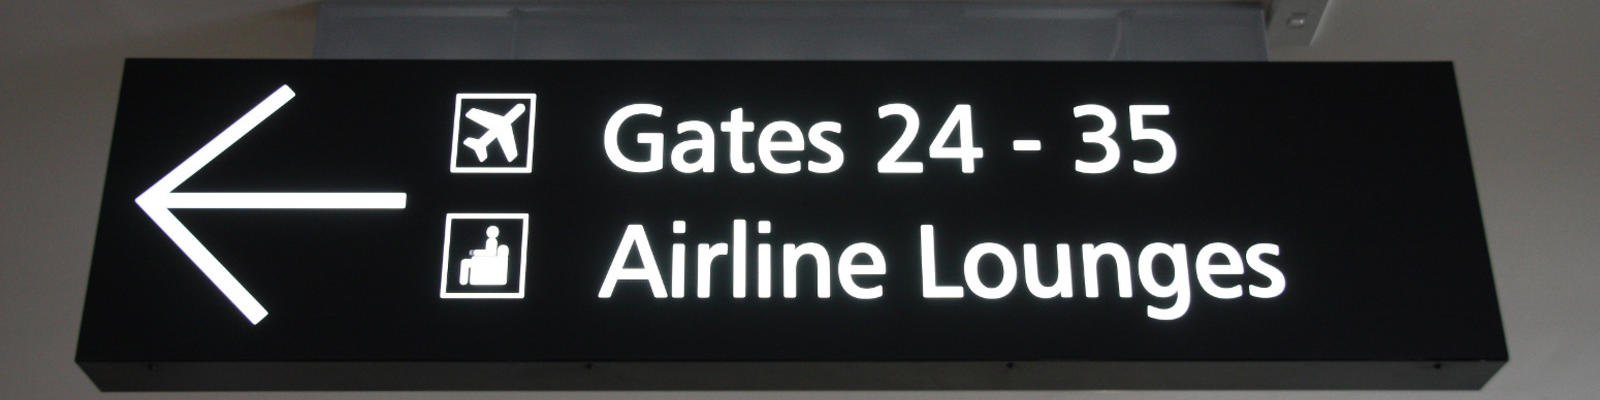 A sign in the airport pointing to gates and lounges